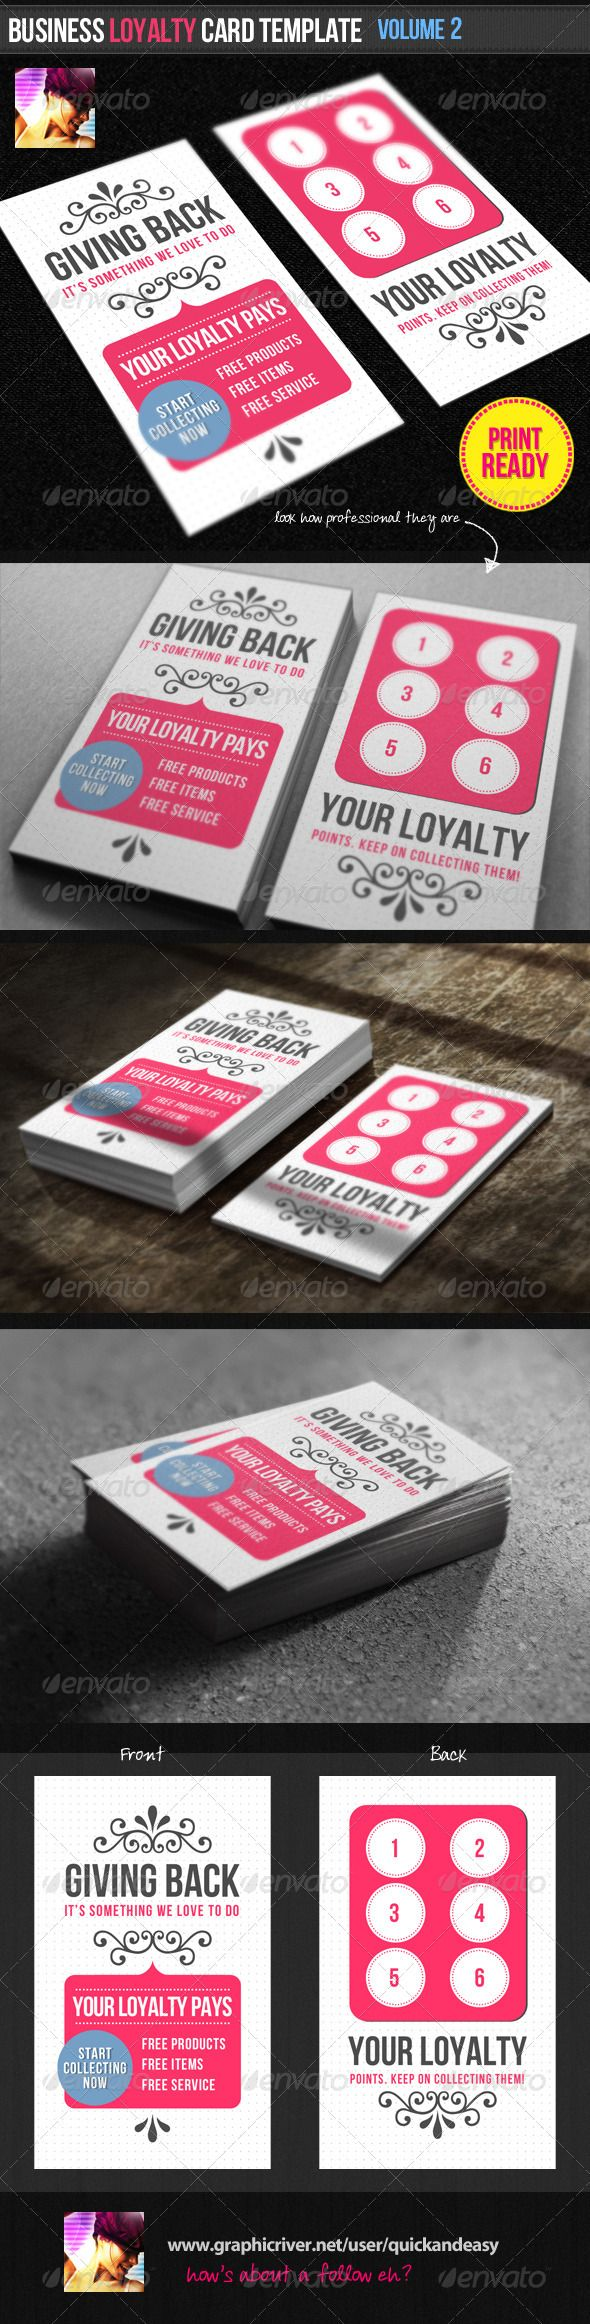 Business Loyalty Card Template Vol.2 | Loyalty cards, Card templates ...